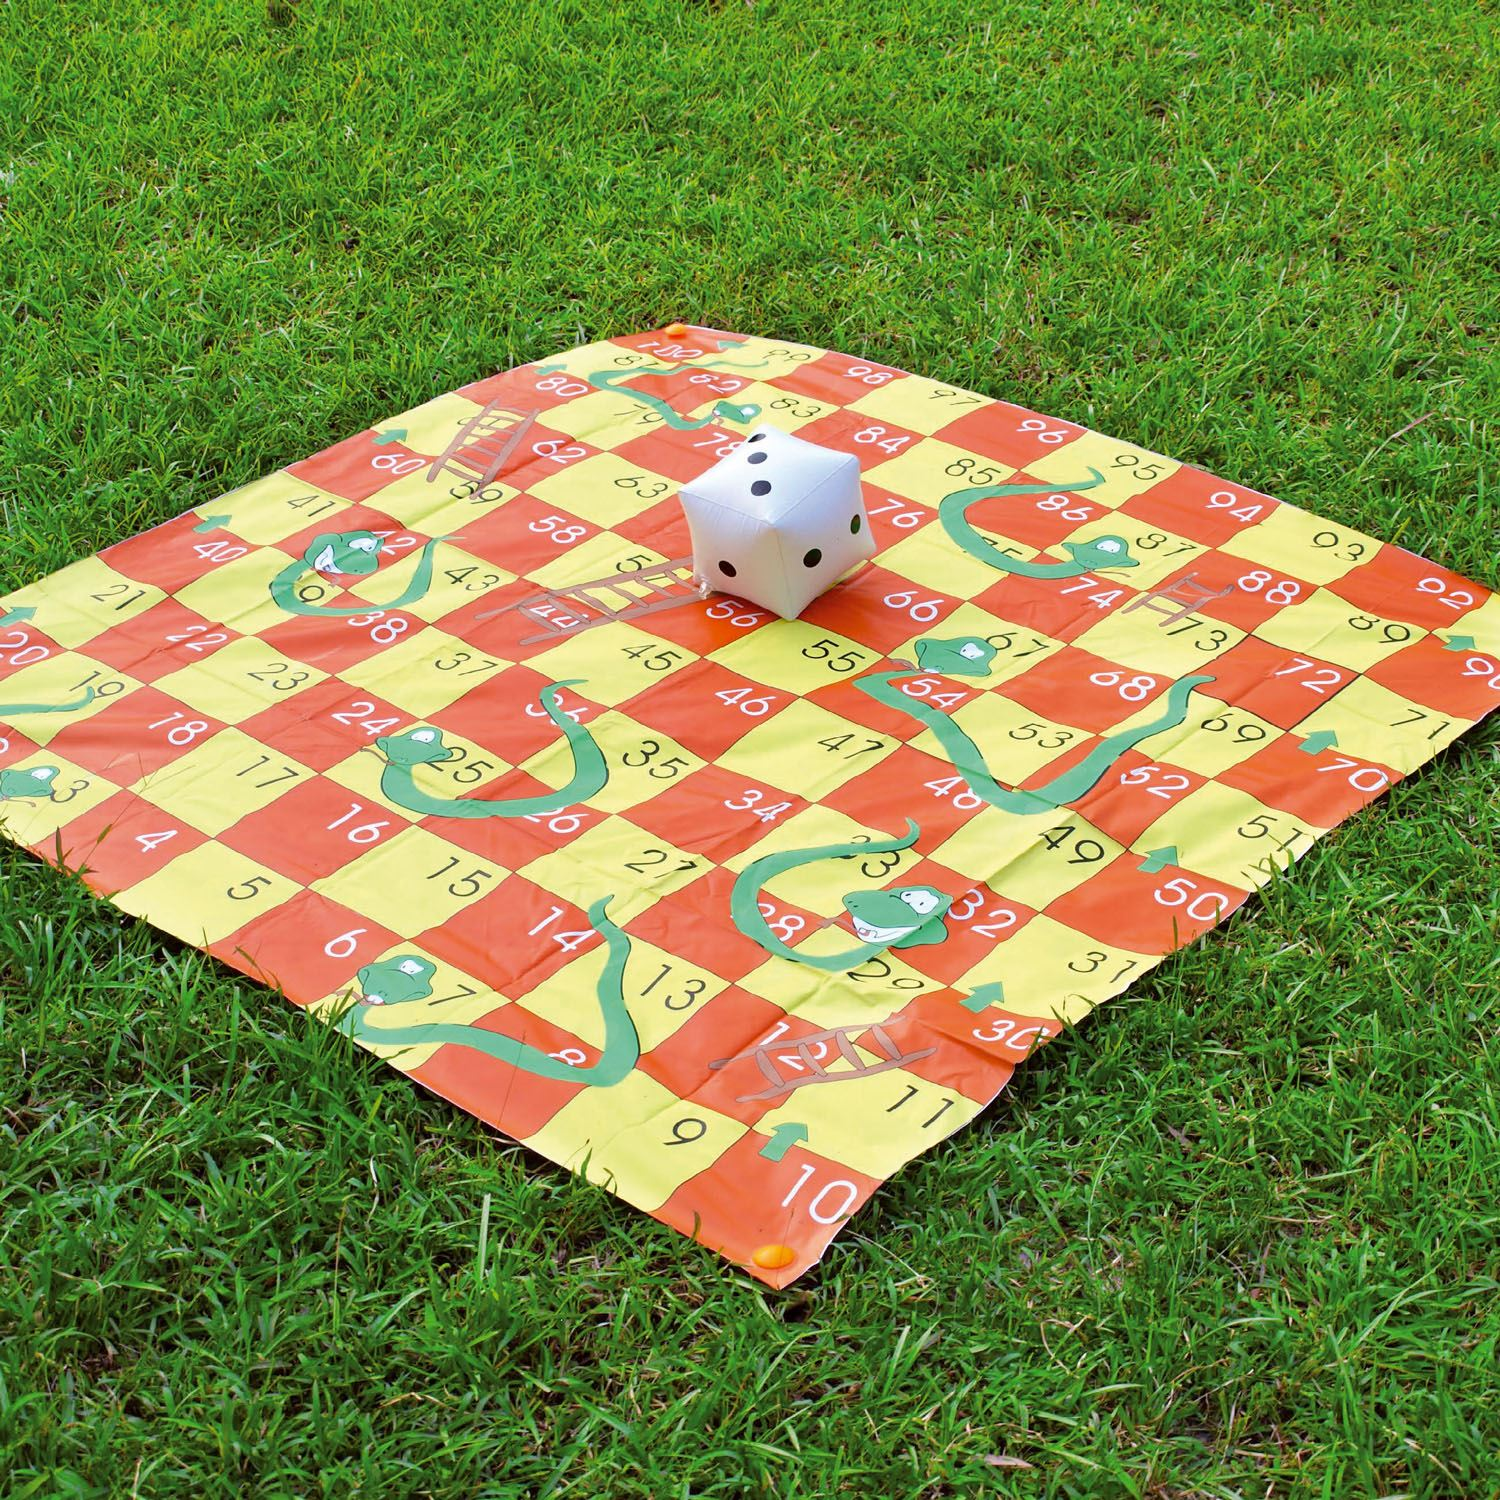 2 in 1 Giant Garden Snakes & Ladders Tangled Twister Outdoor Game